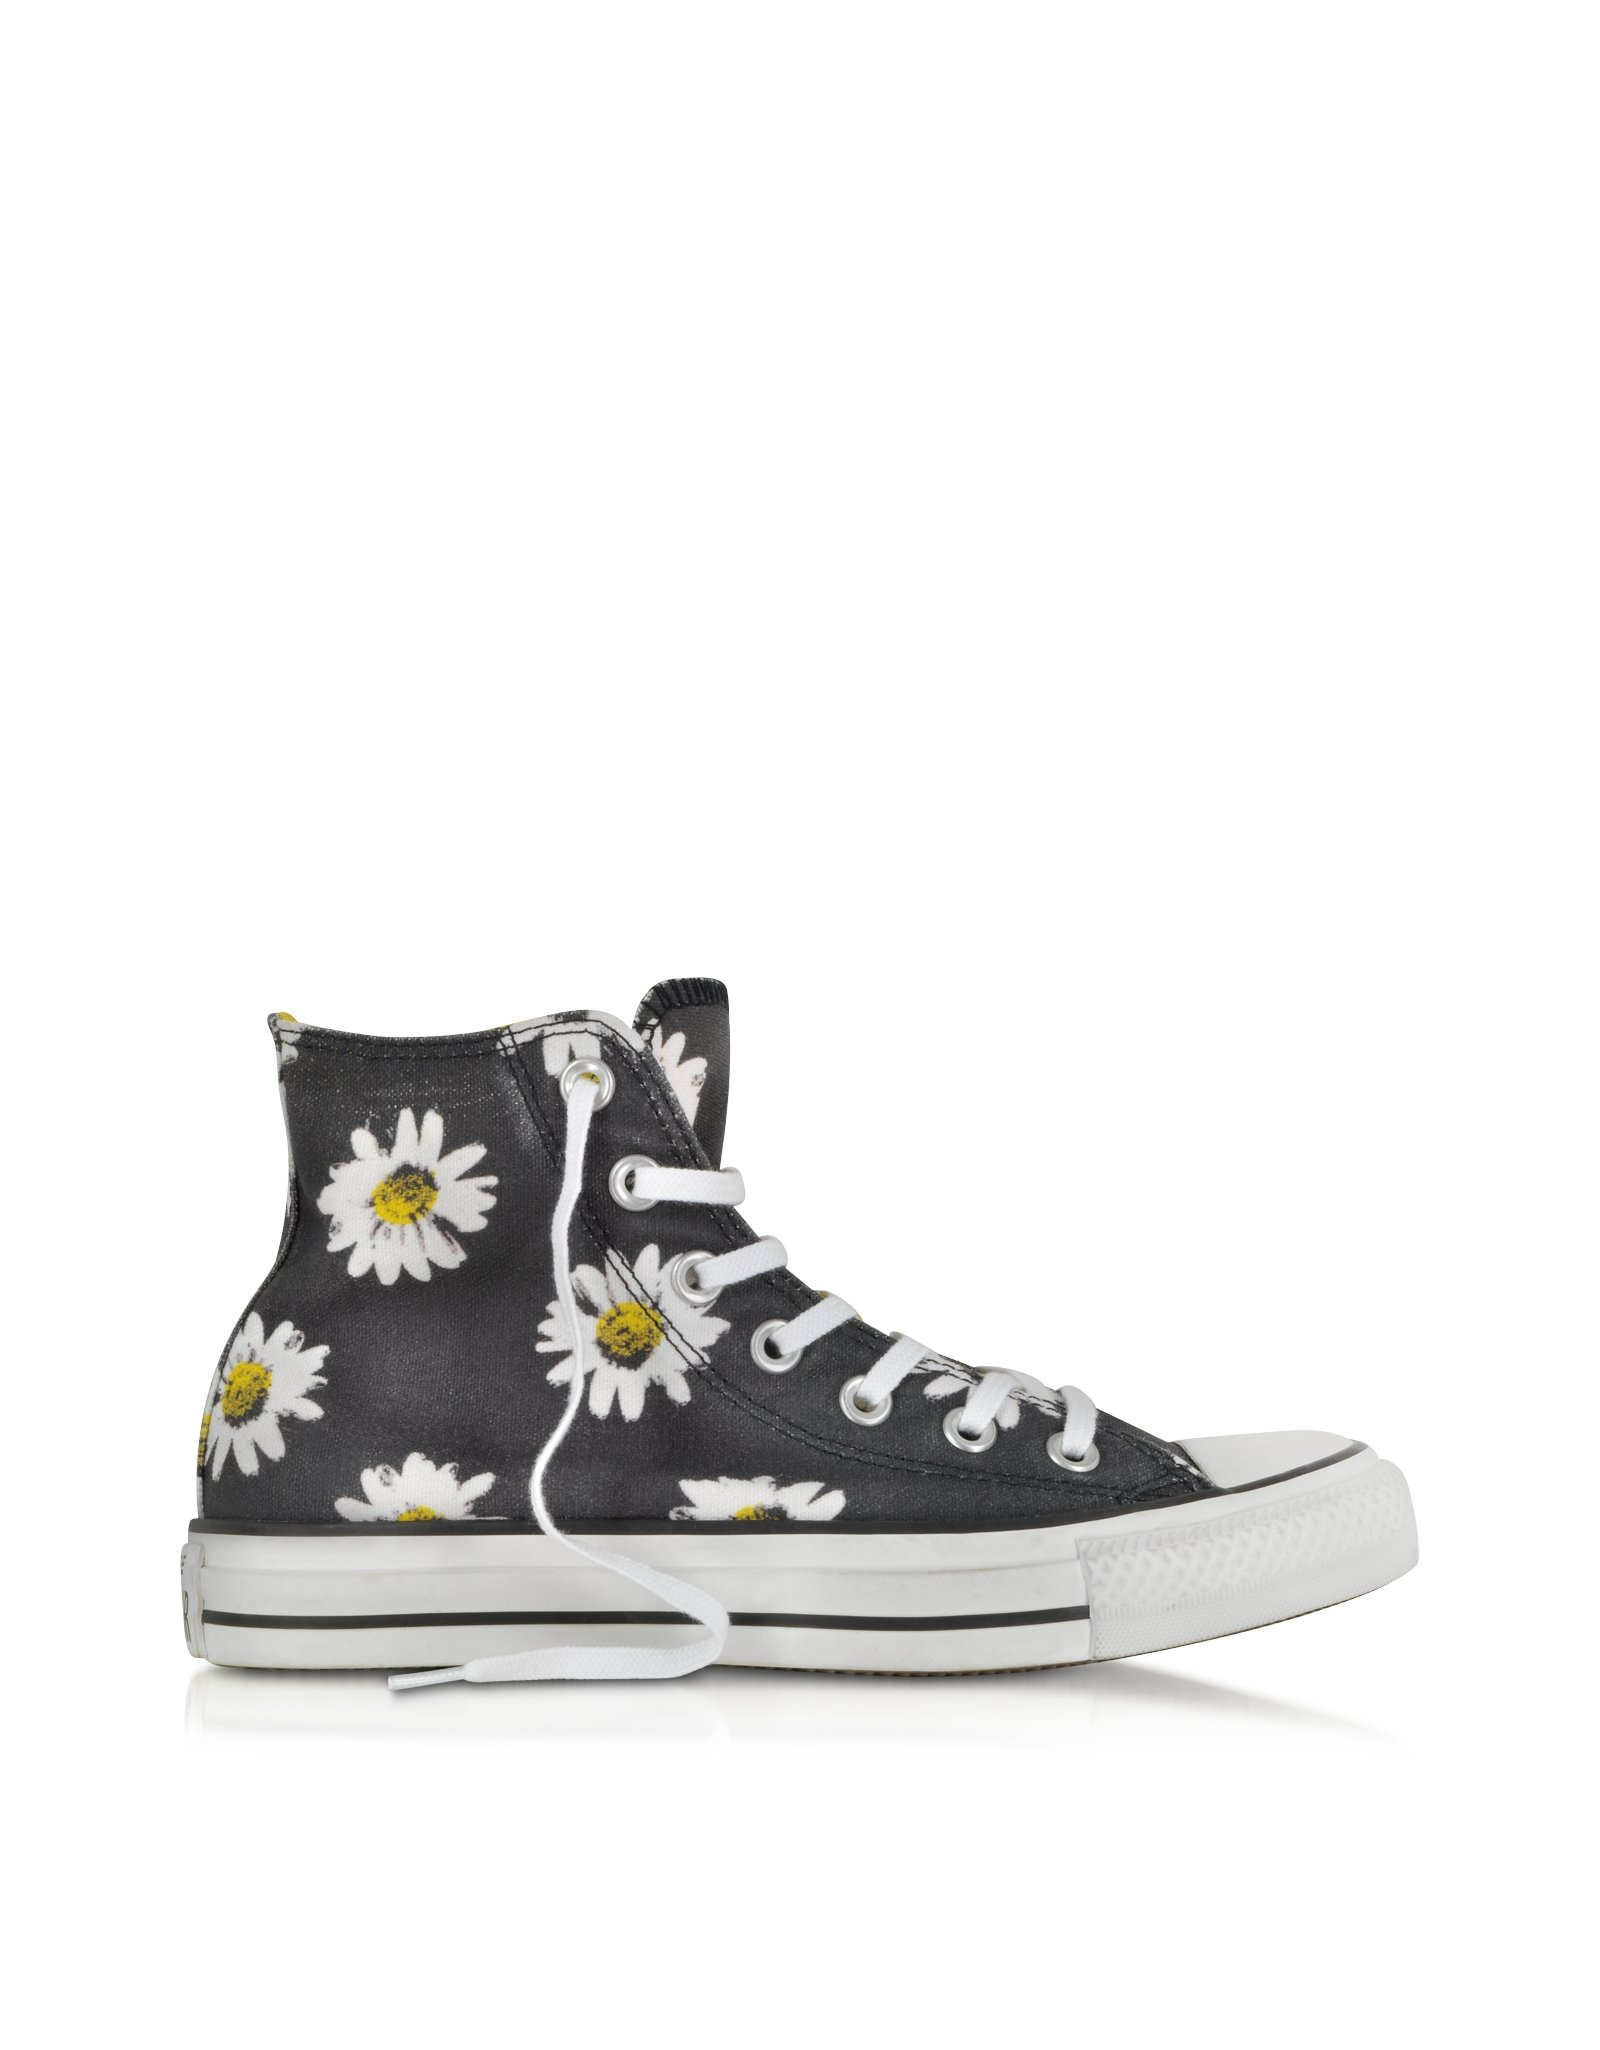 Lyst Converse Chuck Taylor All Star Black And Citrus